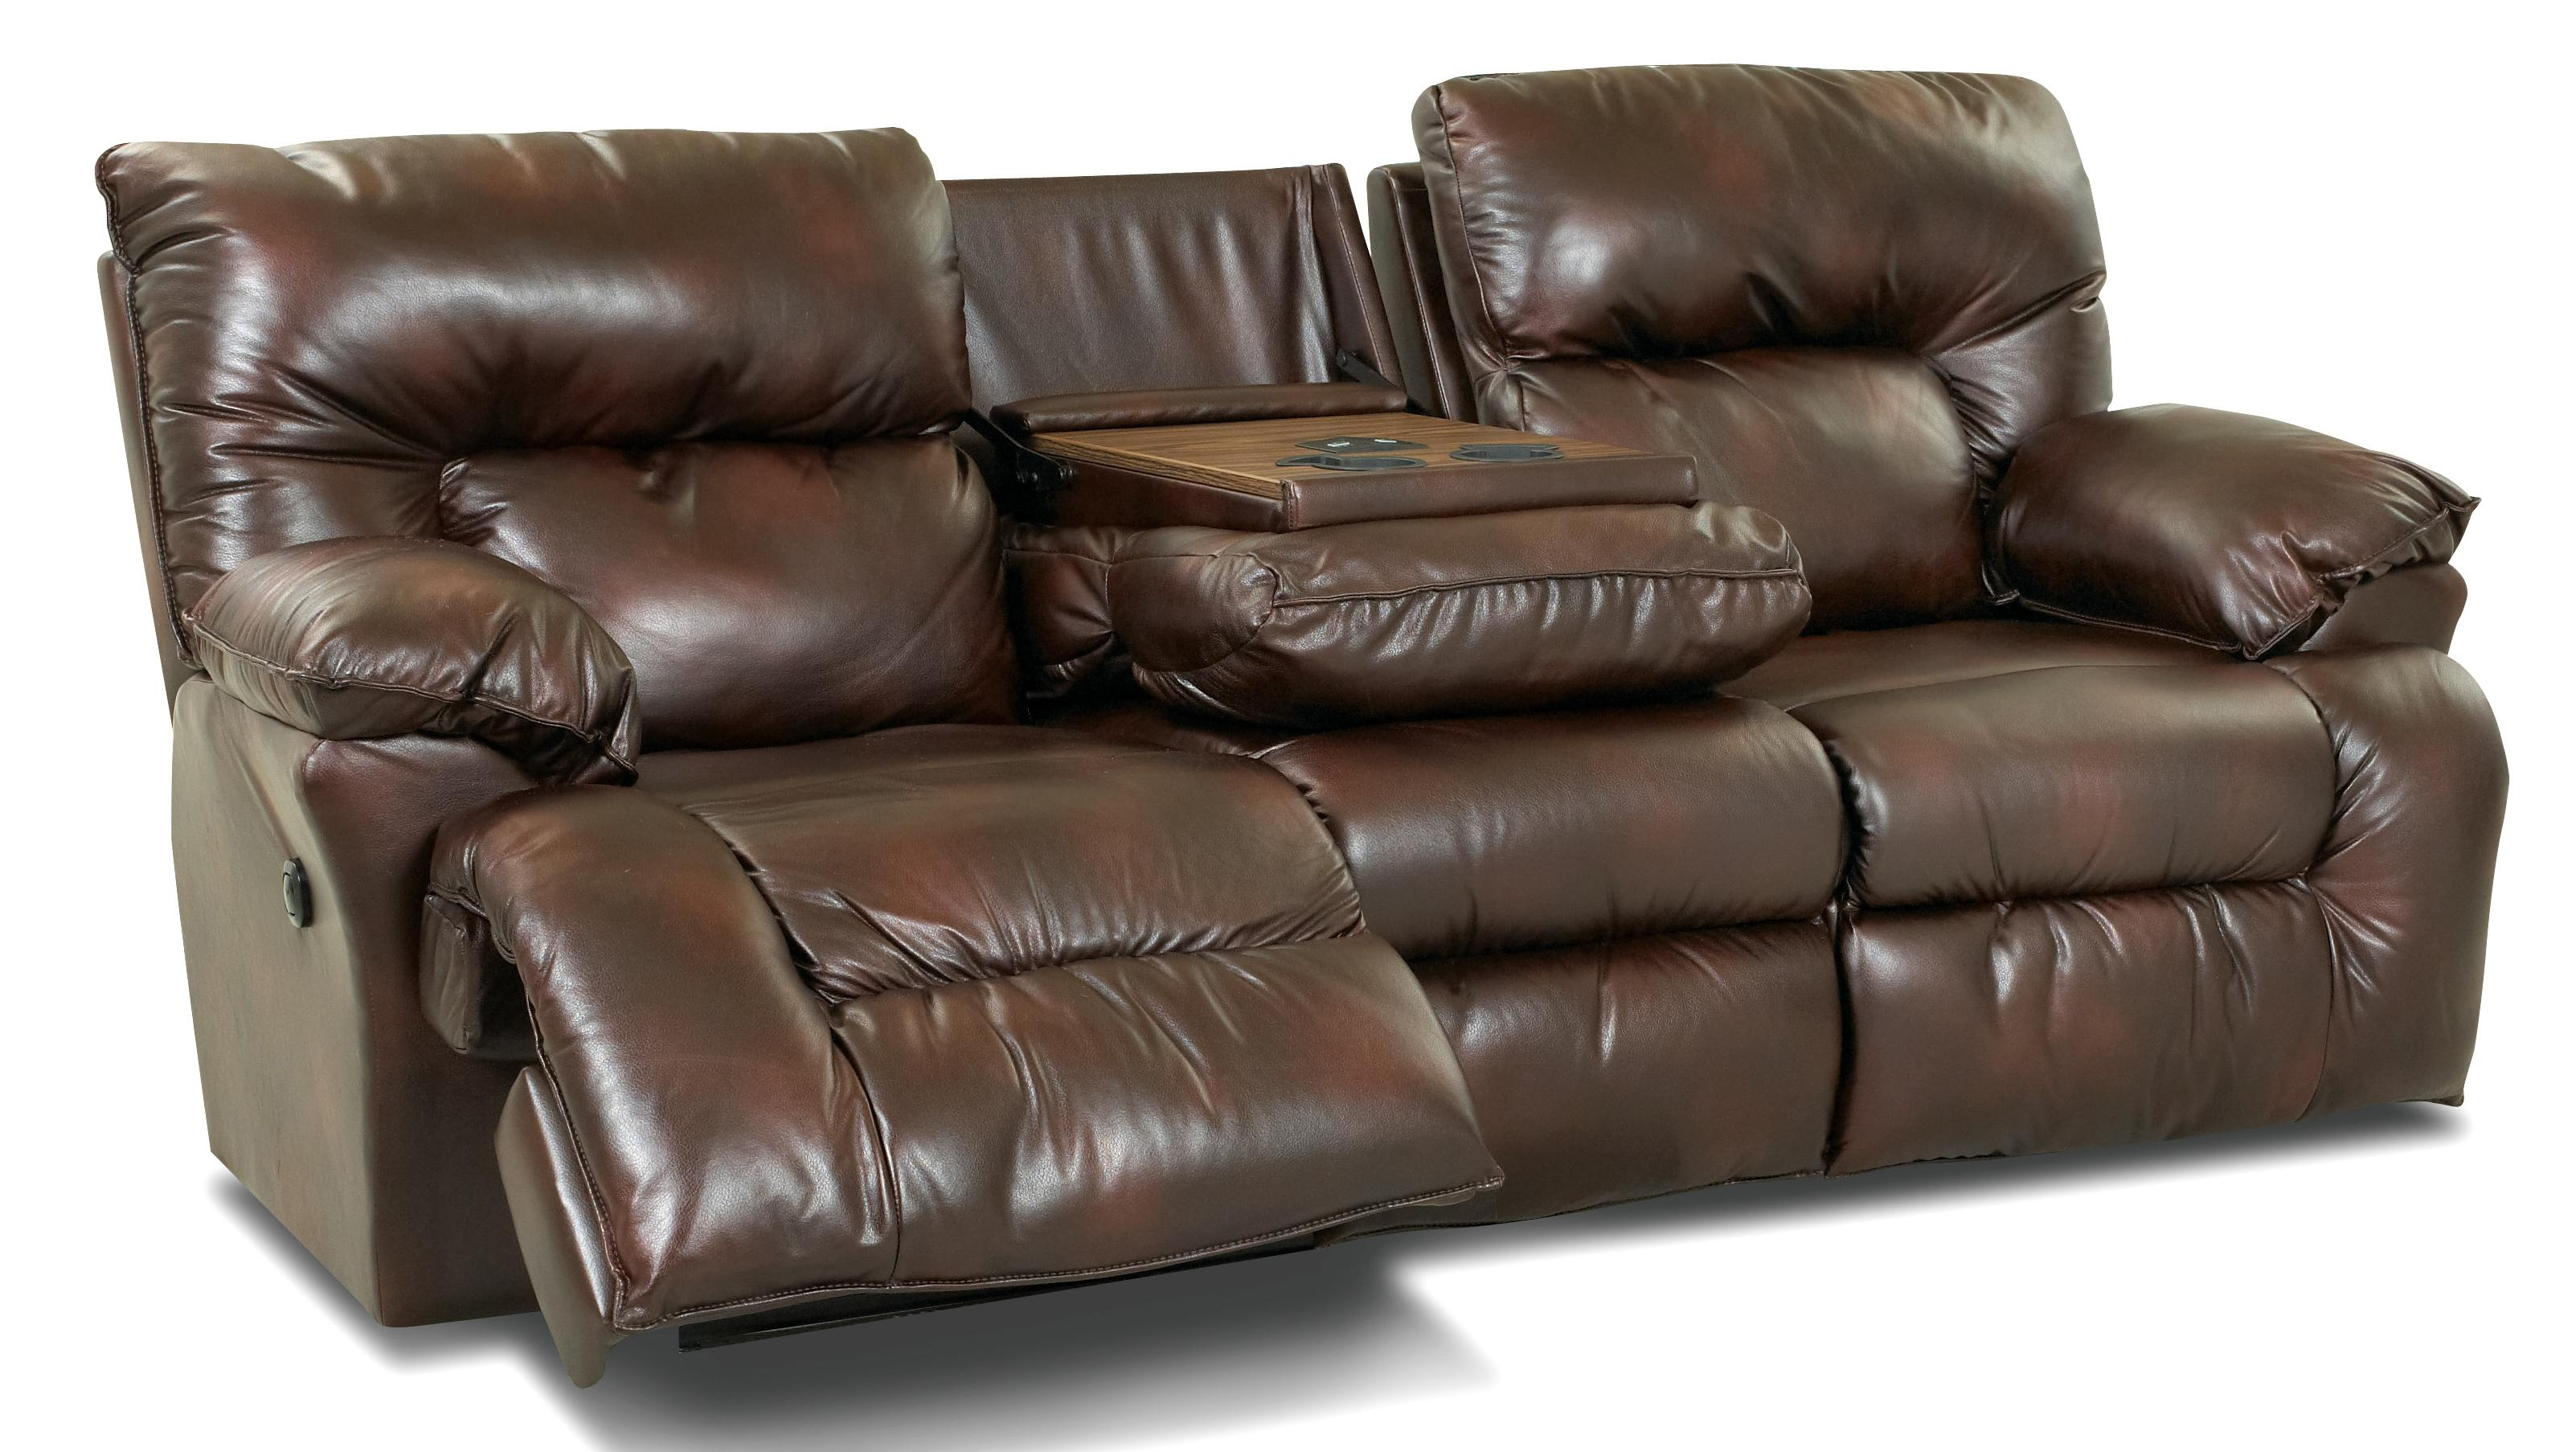 Dual Reclining Sofa With Drop Down Table Refil